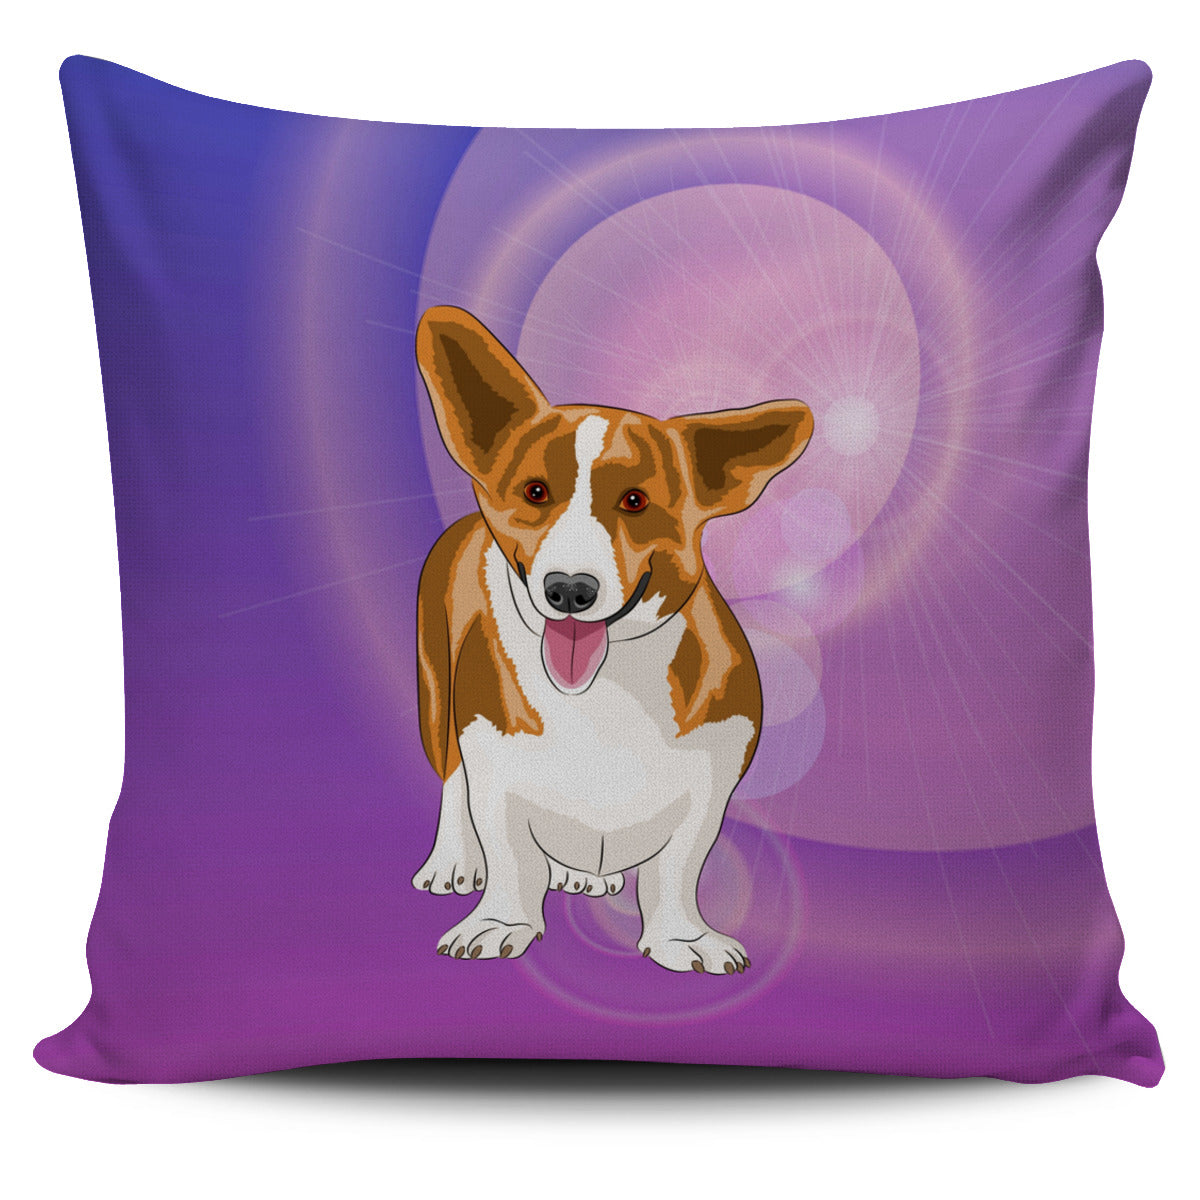 Corgi Pillow Cover - Purple